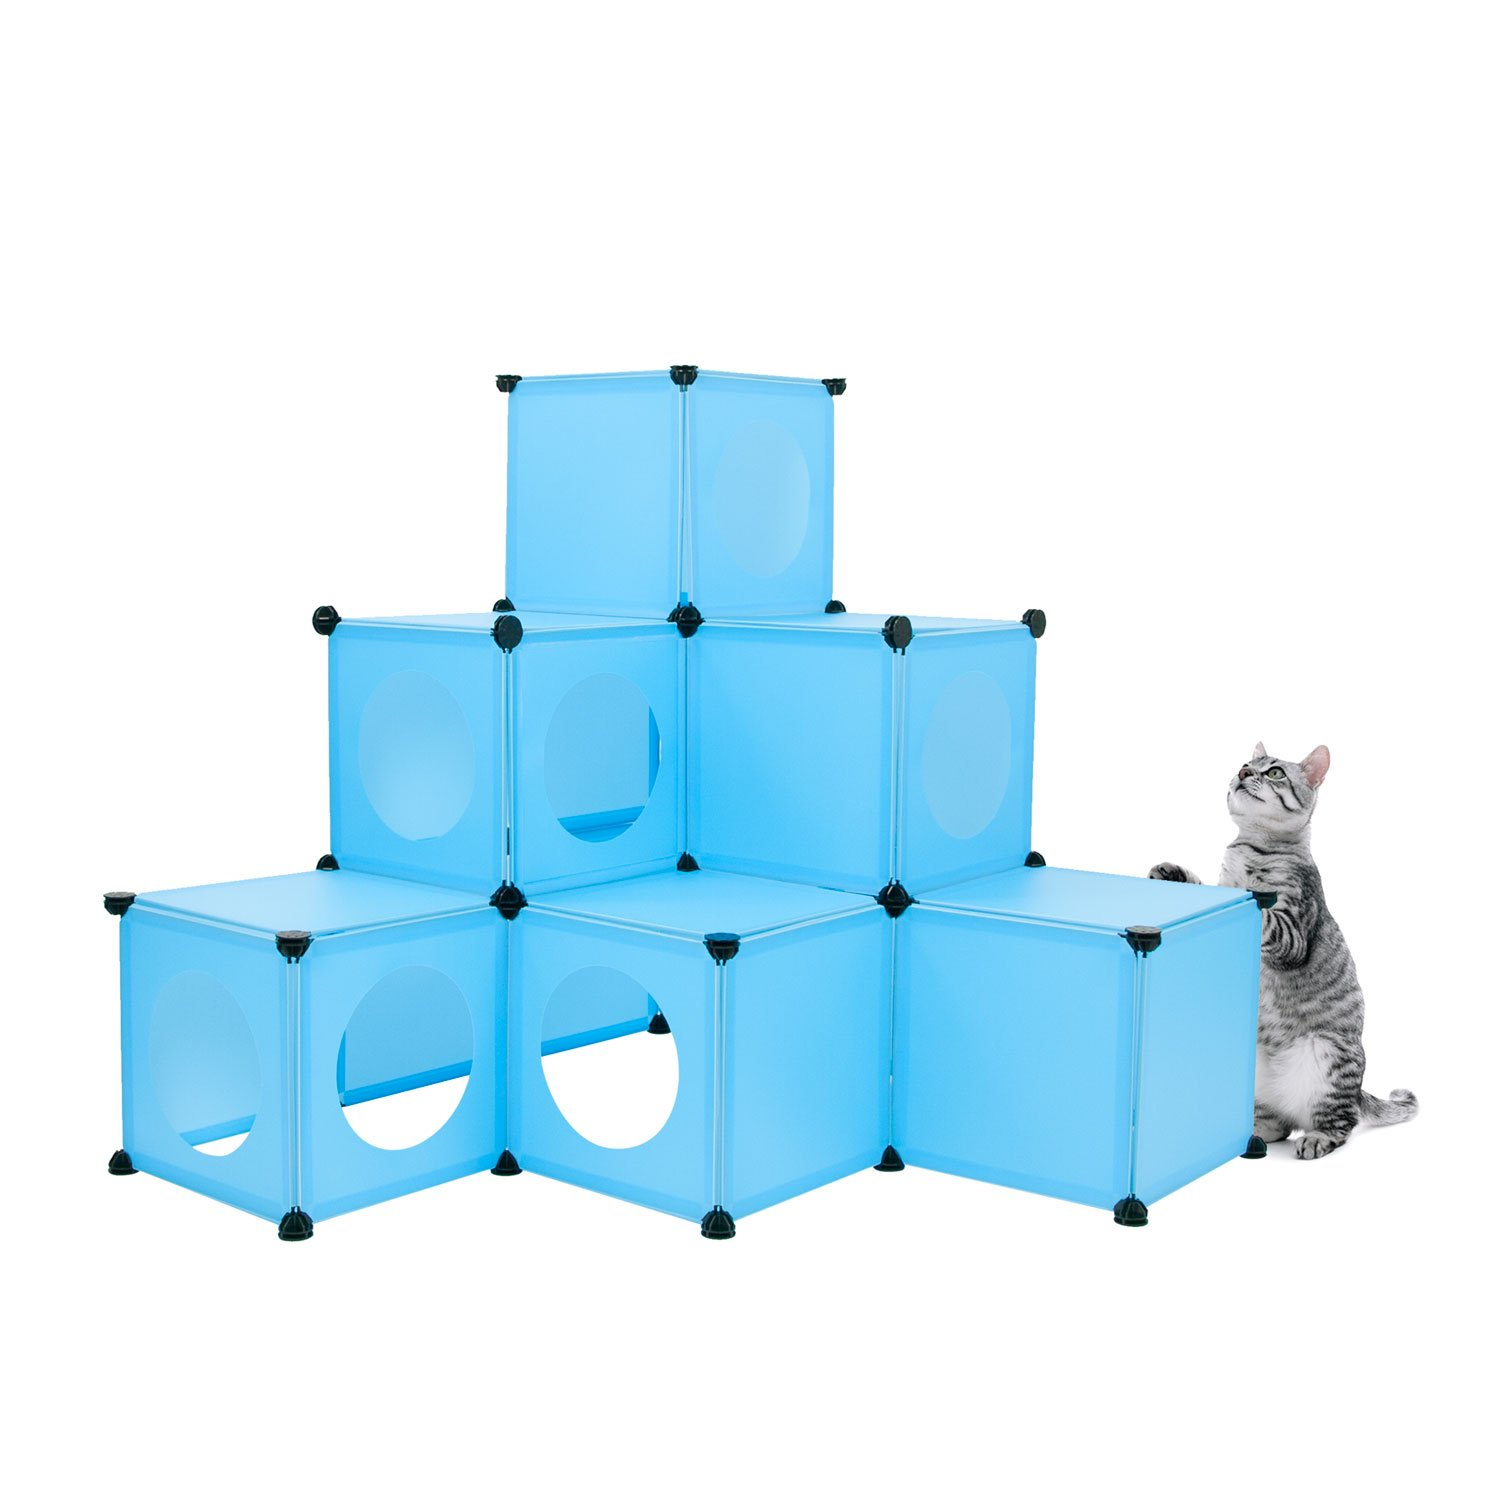 FrontPet Cat Condo/Blue XL Modular 109 Piece Cat Condo/Cat House/DIY Cat Tower/Cat Tree Kit/Build Your Own Fully Customizable Cat House By